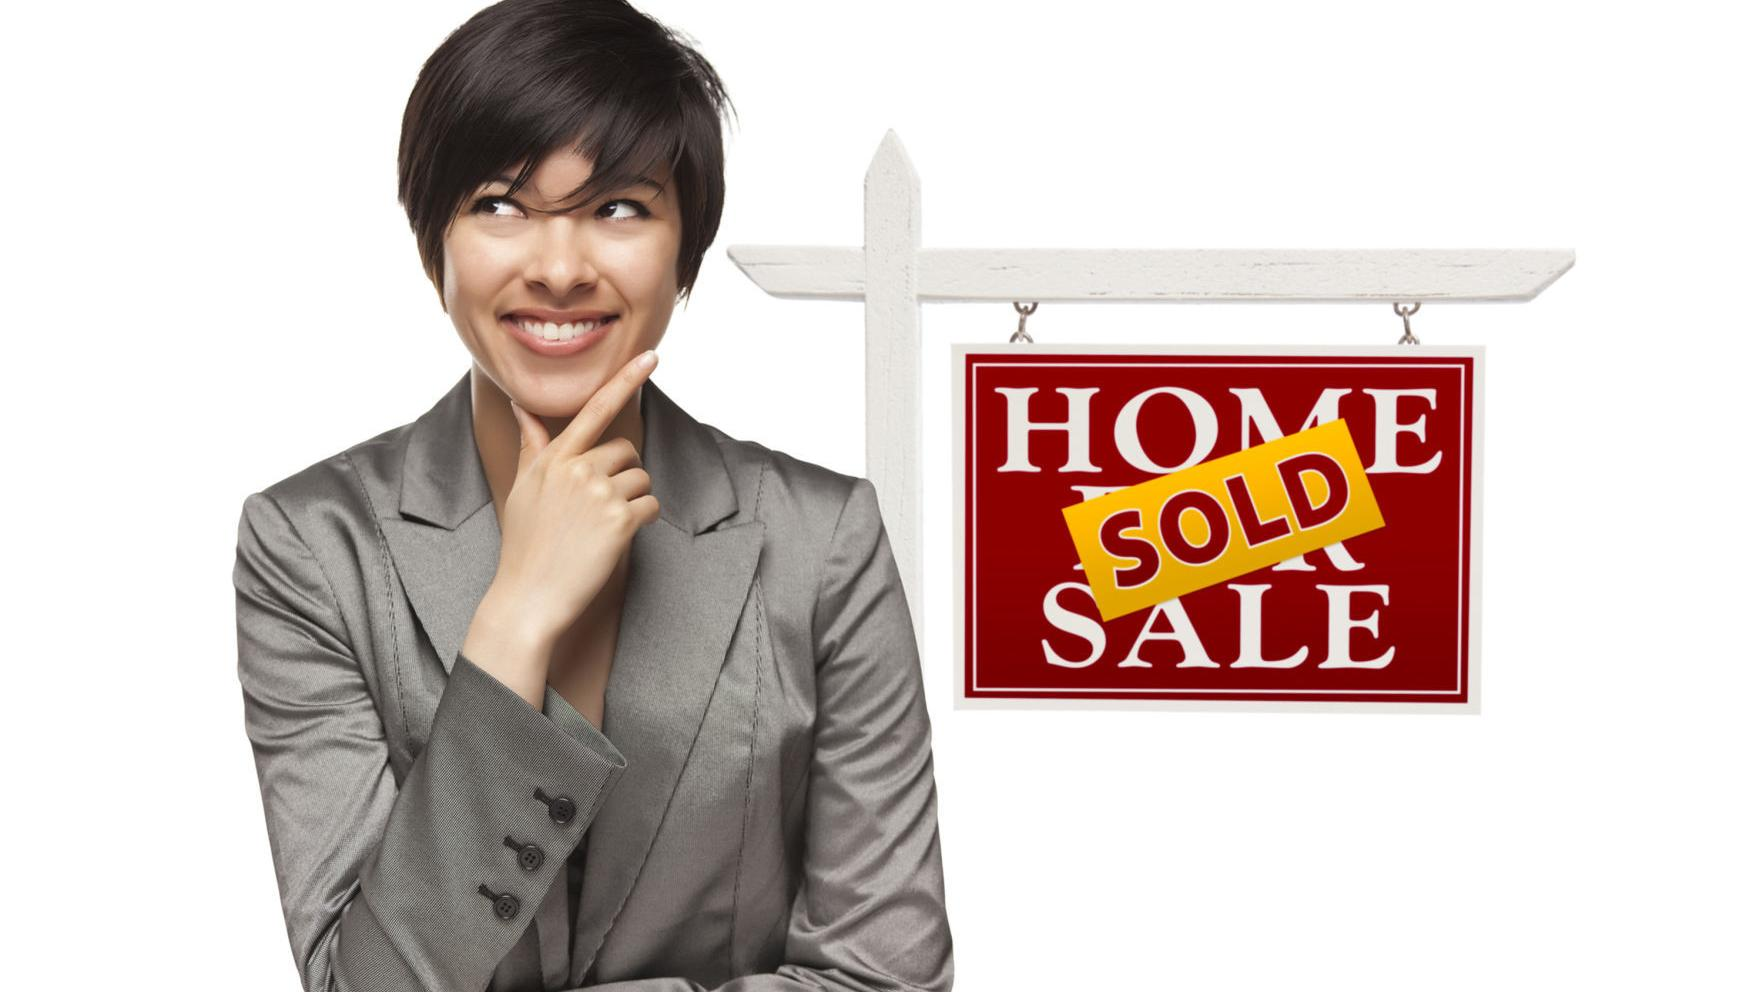 How to avoid buyer's remorse